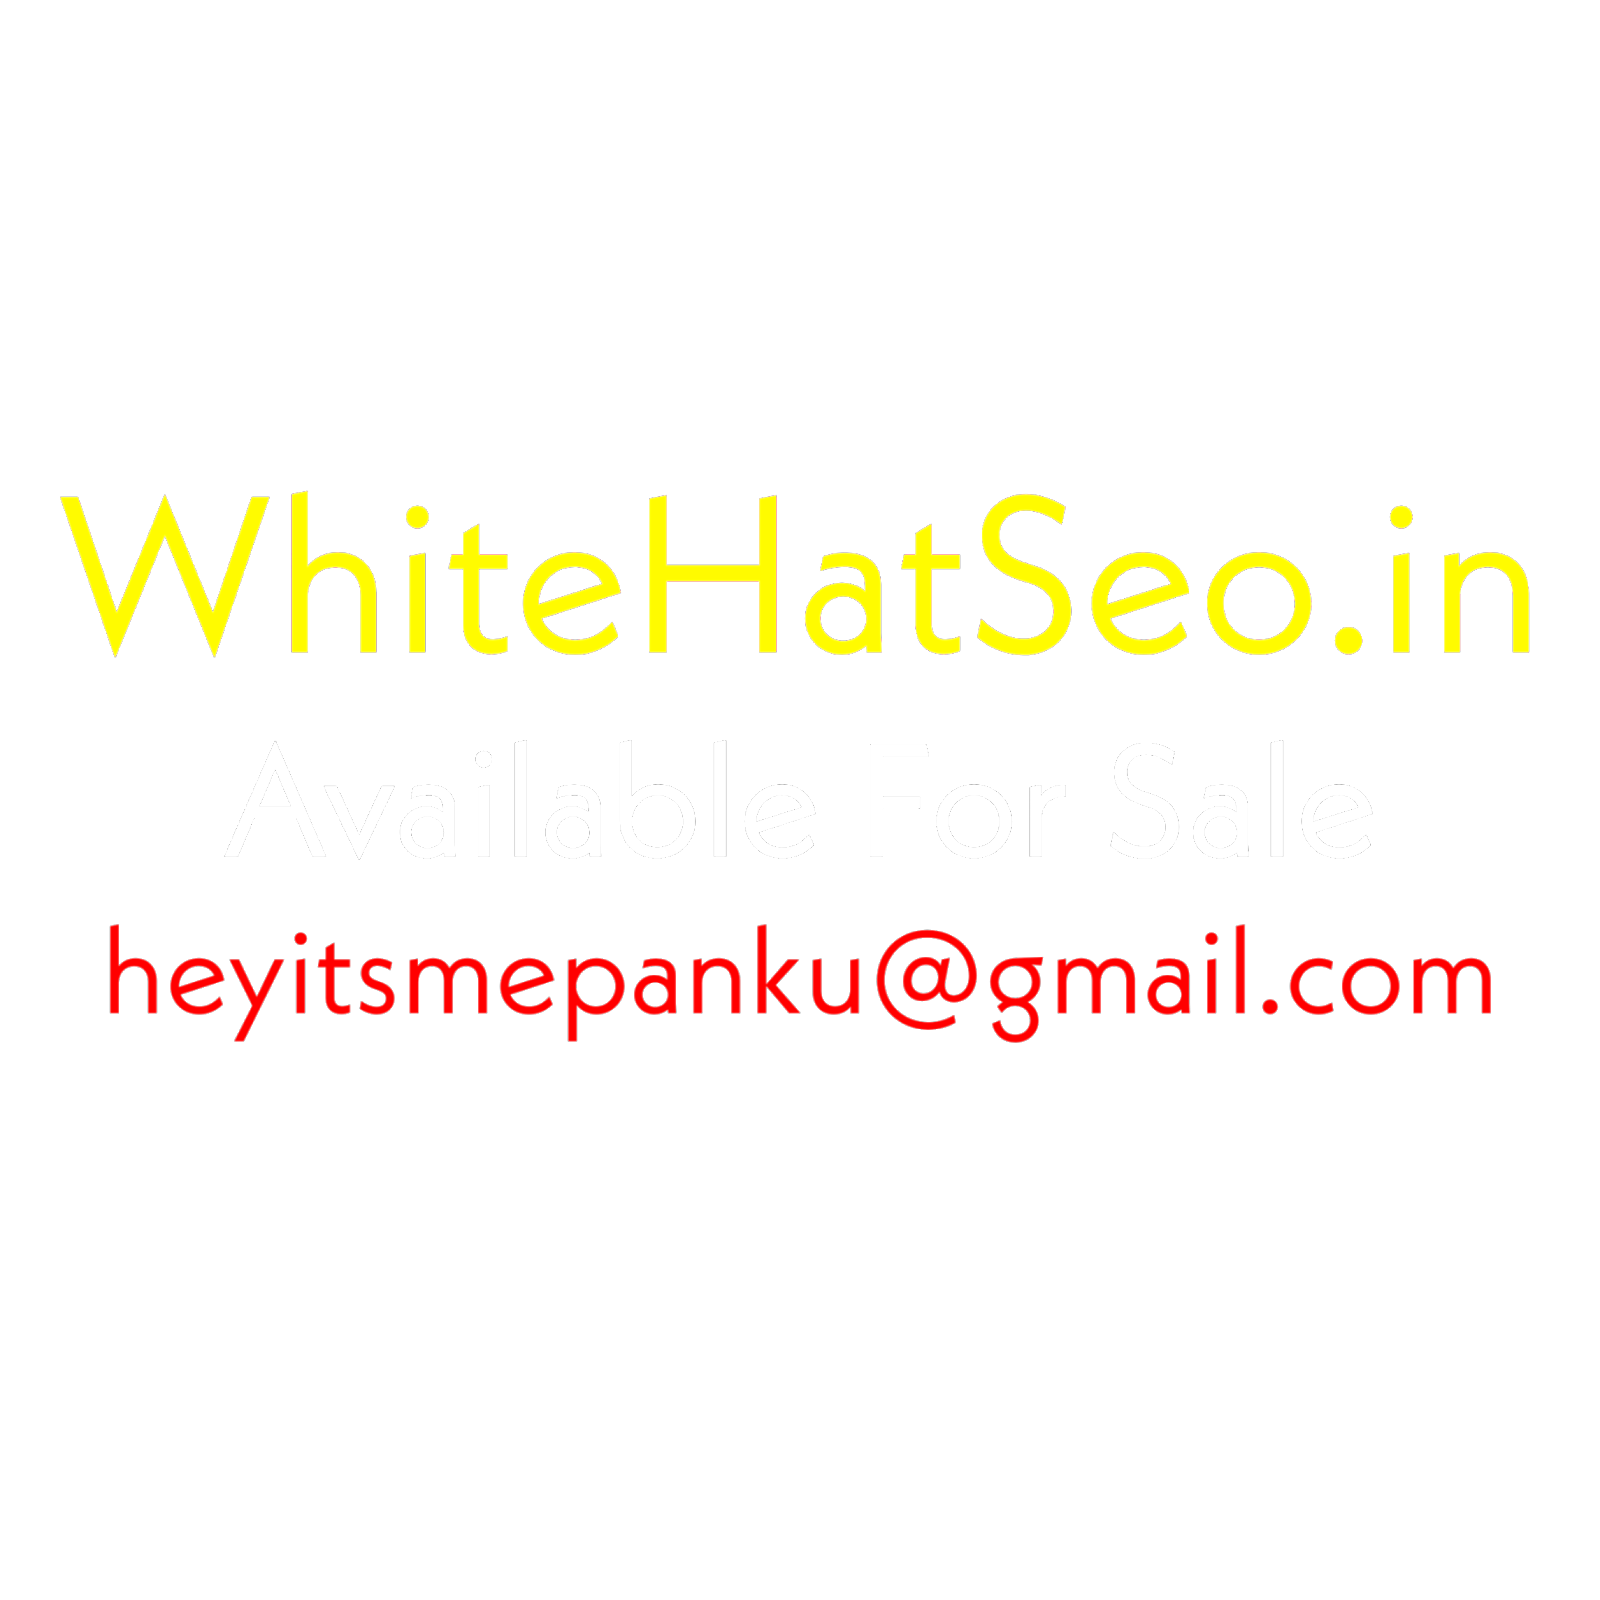 WhiteHatSeo.in